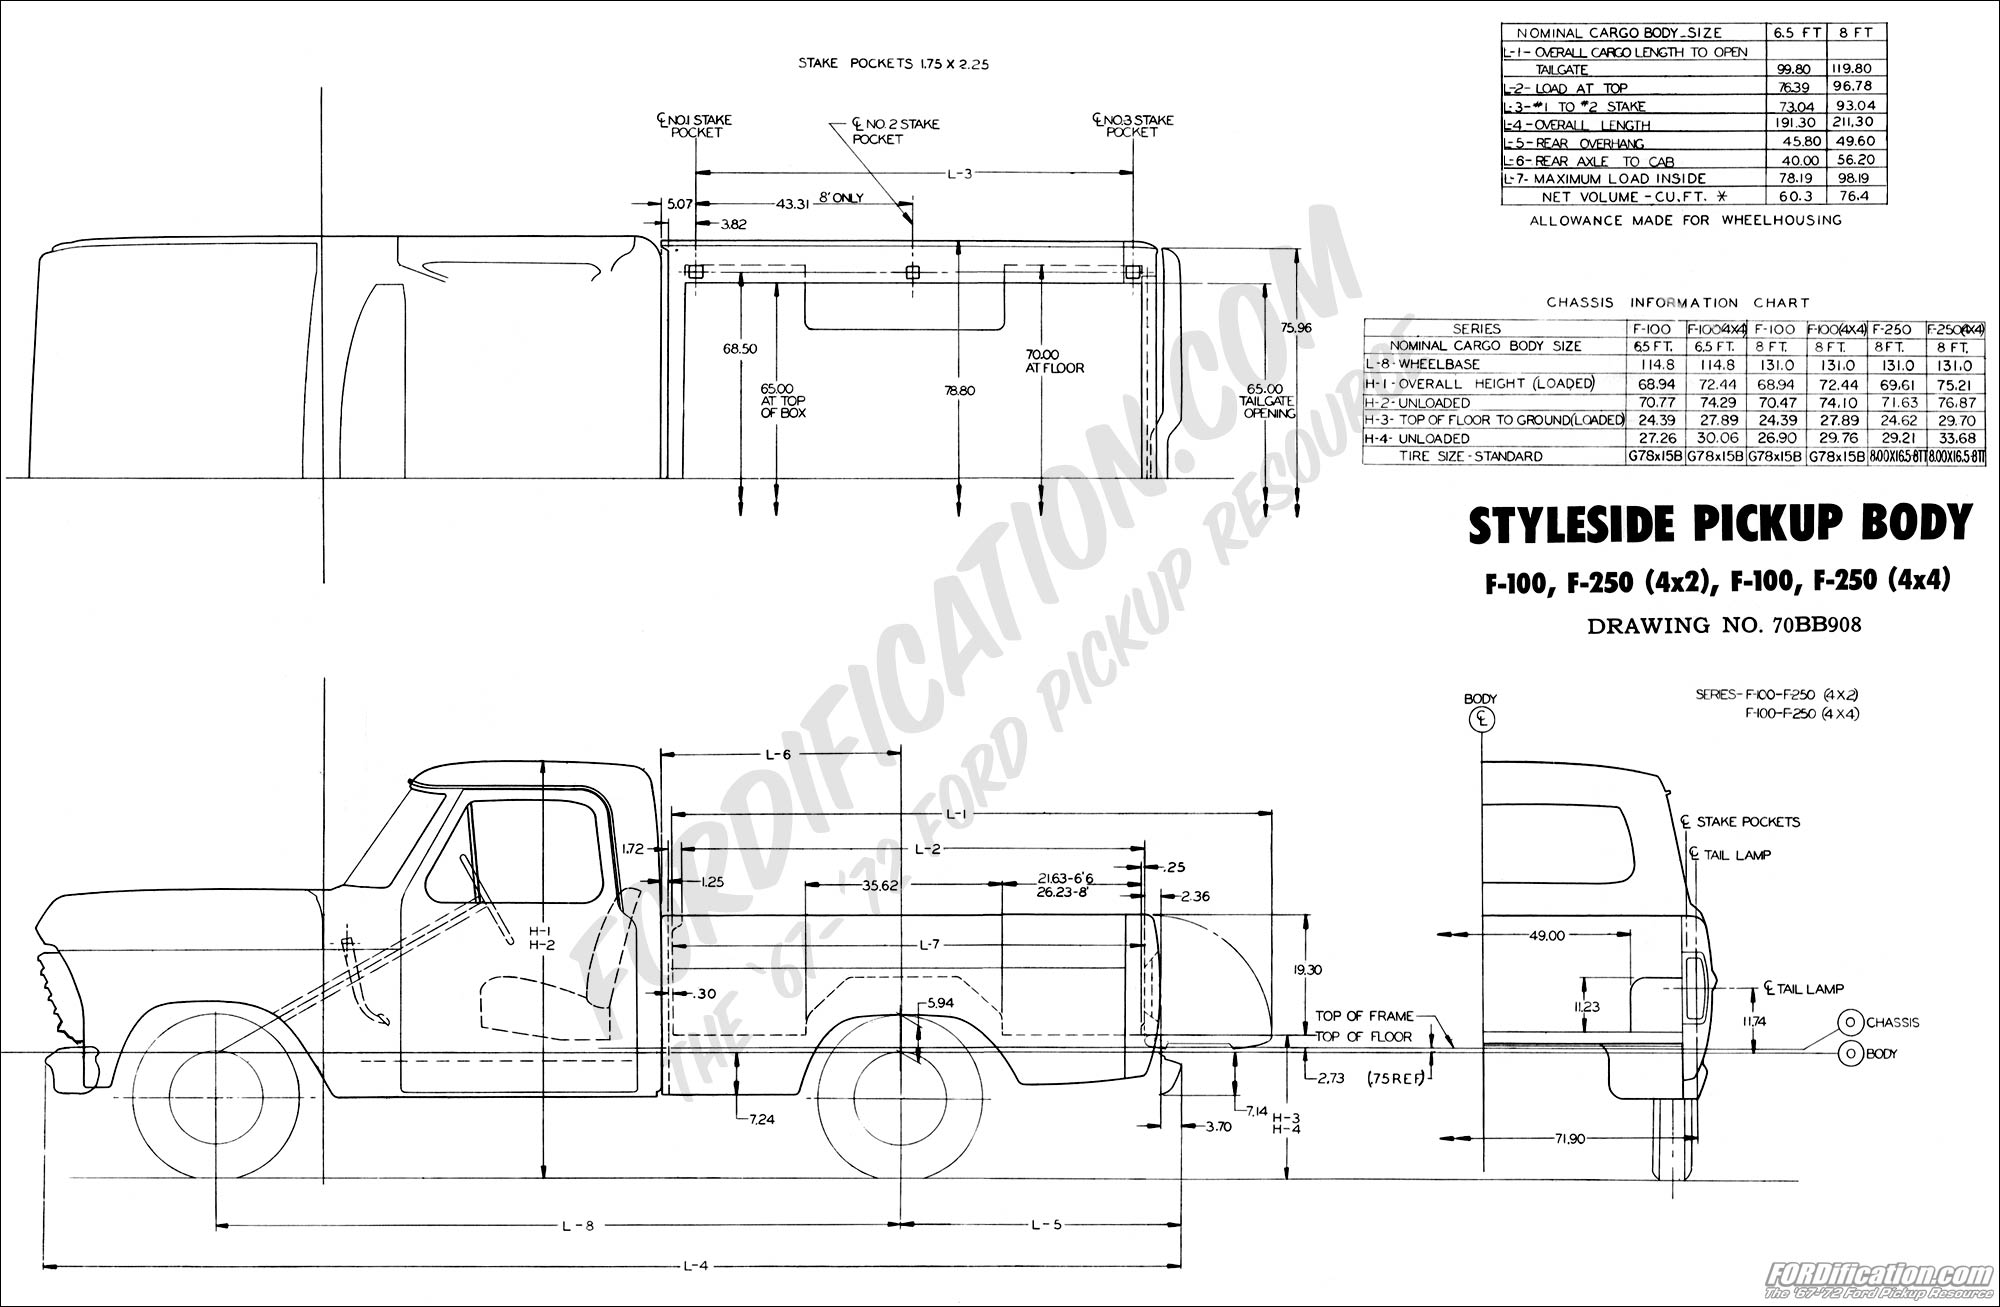 1965 ford f150 wiring diagram